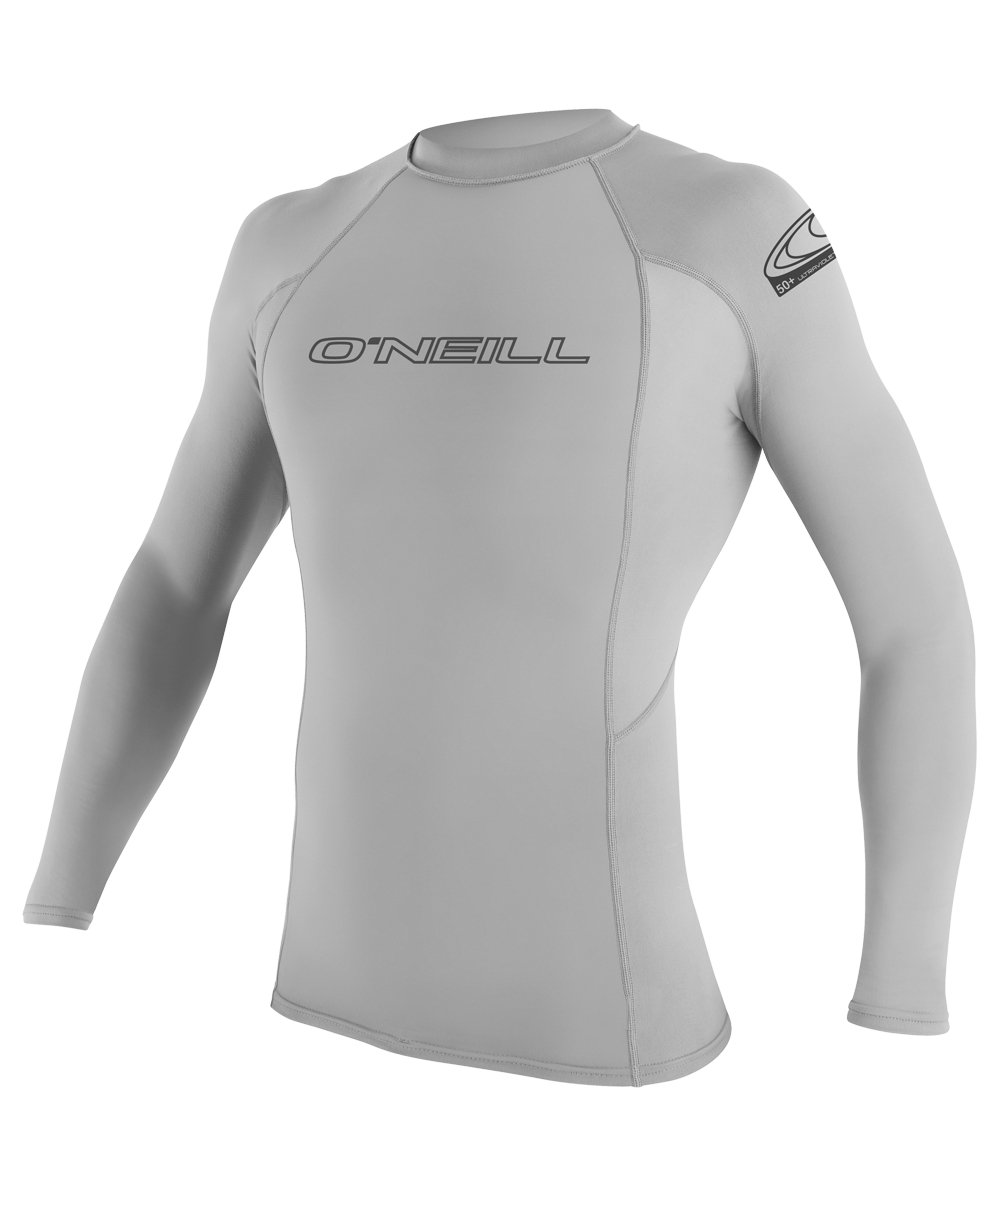 O'Neill Men's Basic Skins UPF 50+ Long Sleeve Rash Guard, Lunar, XX-Large by O'Neill Wetsuits